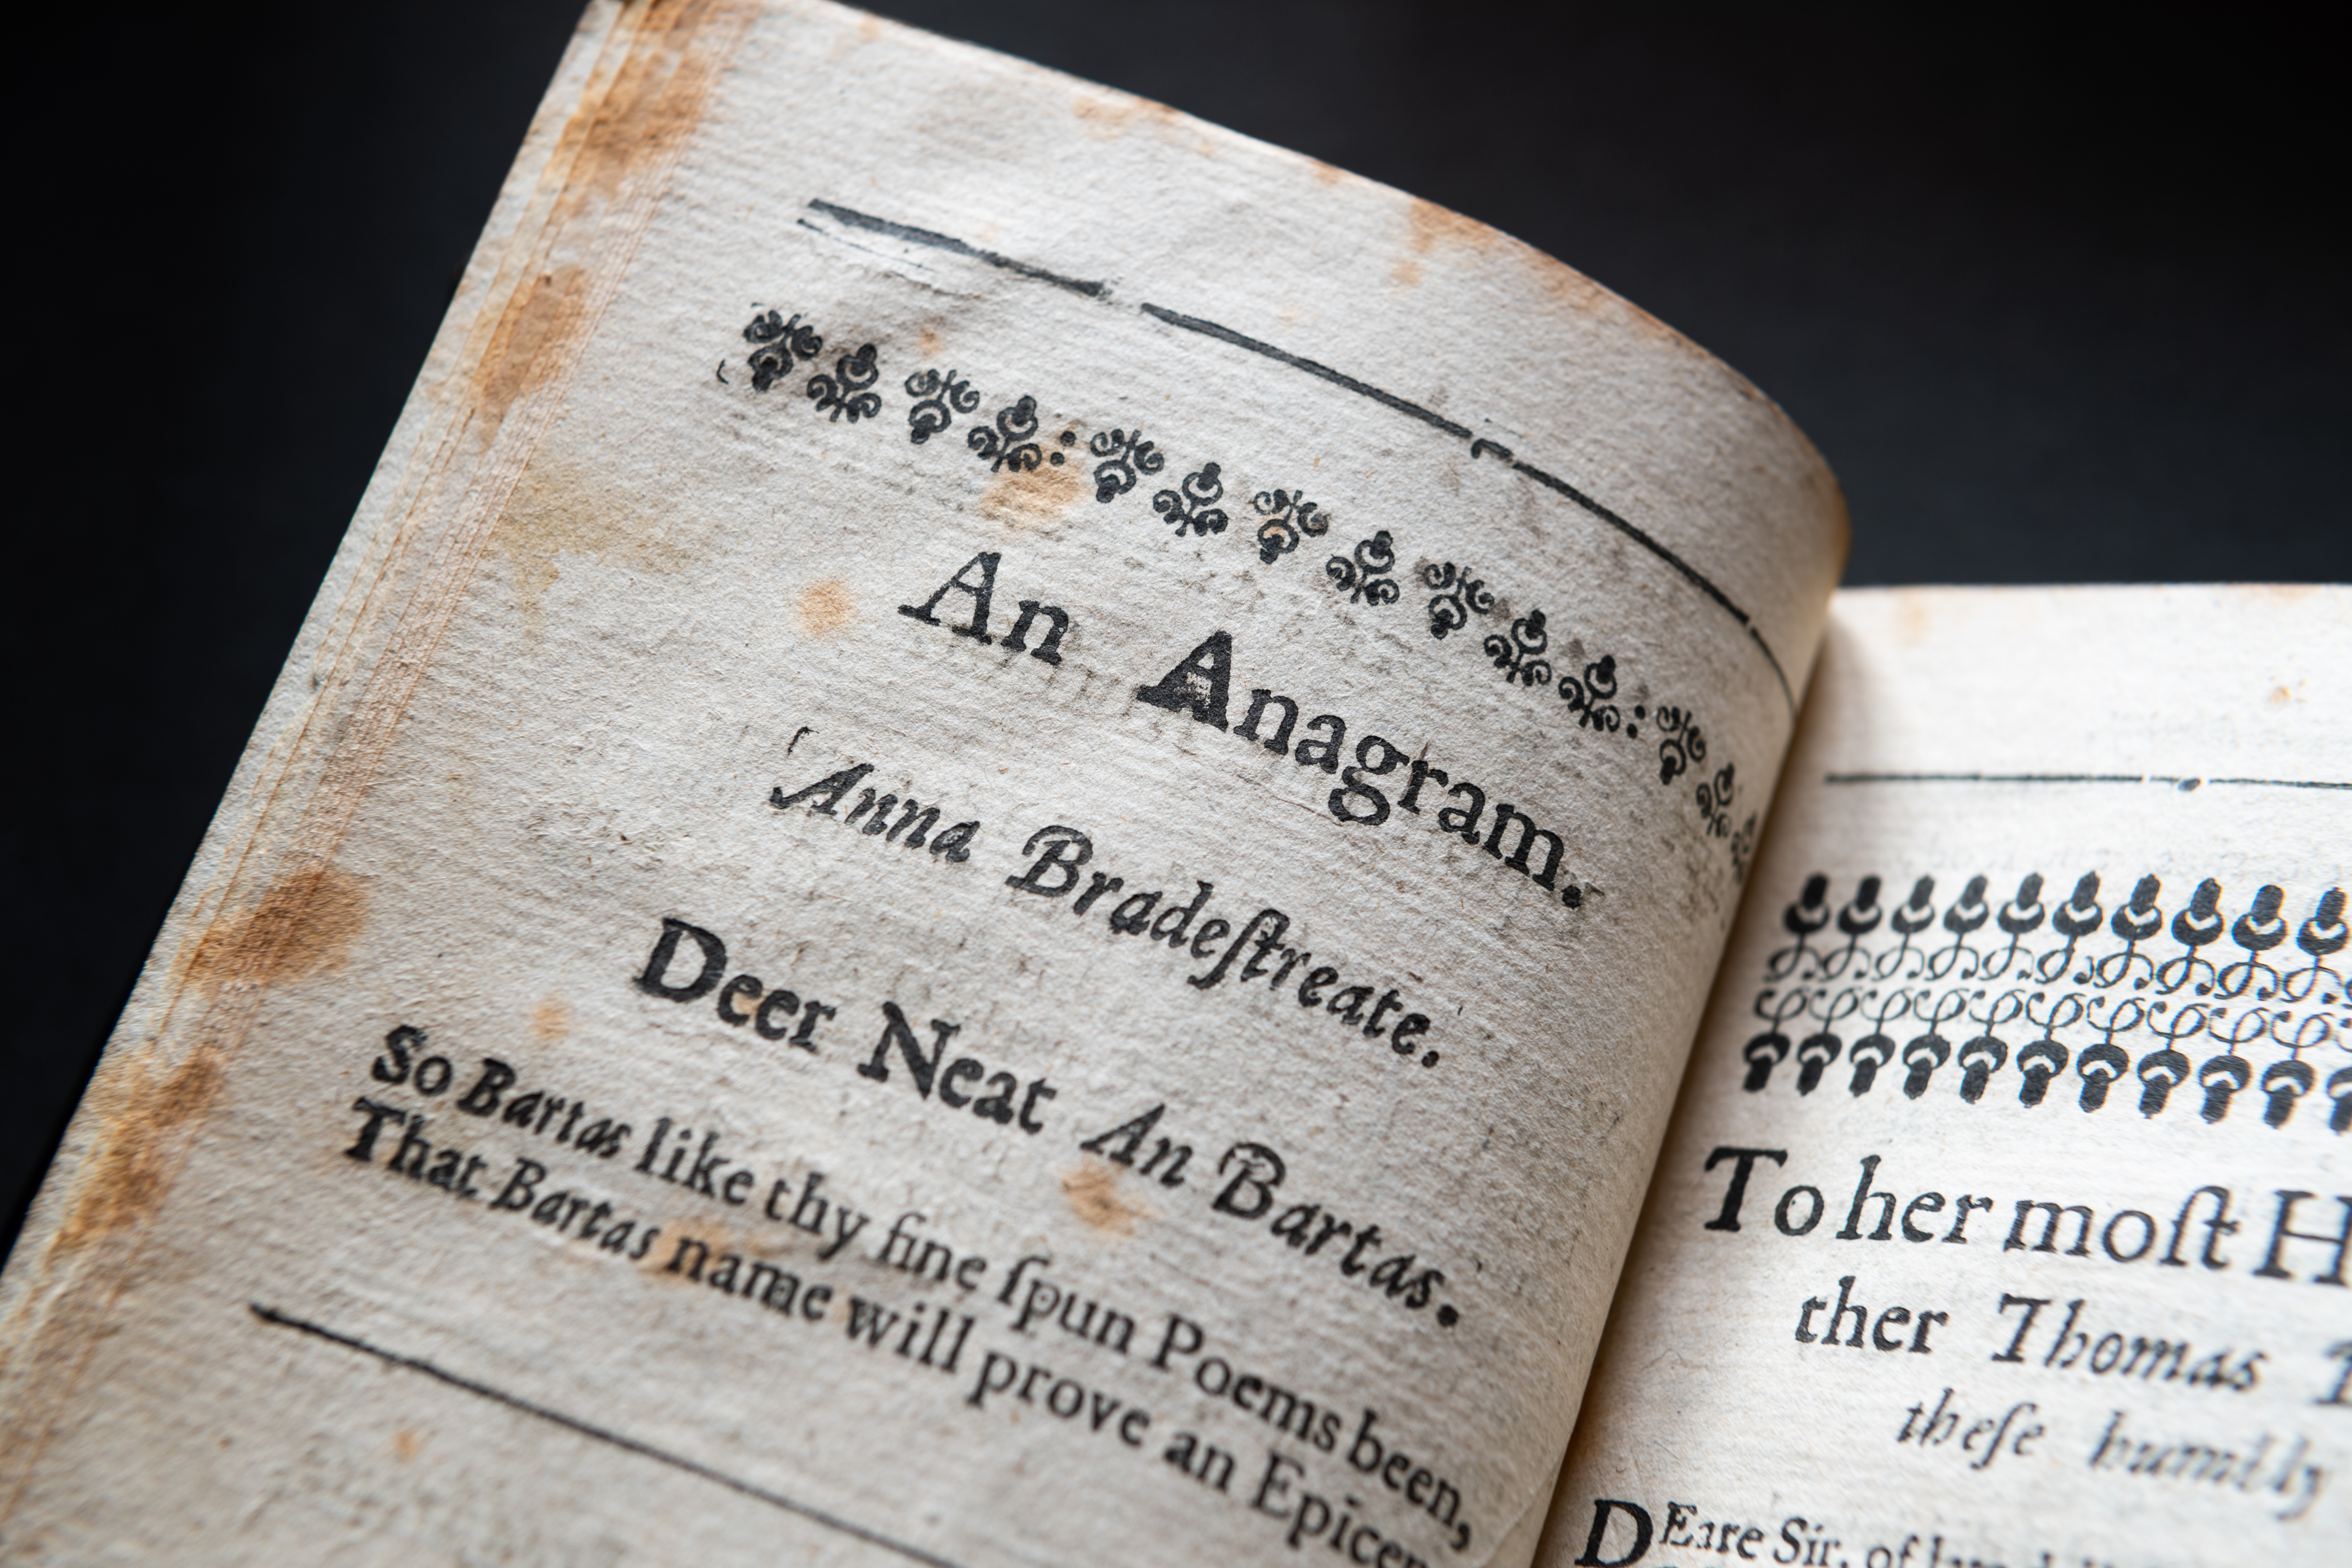 "Detail of a printed book shows worn papers and header text reading ""An Anagram. Anna Bradestreate"" and other text in English."